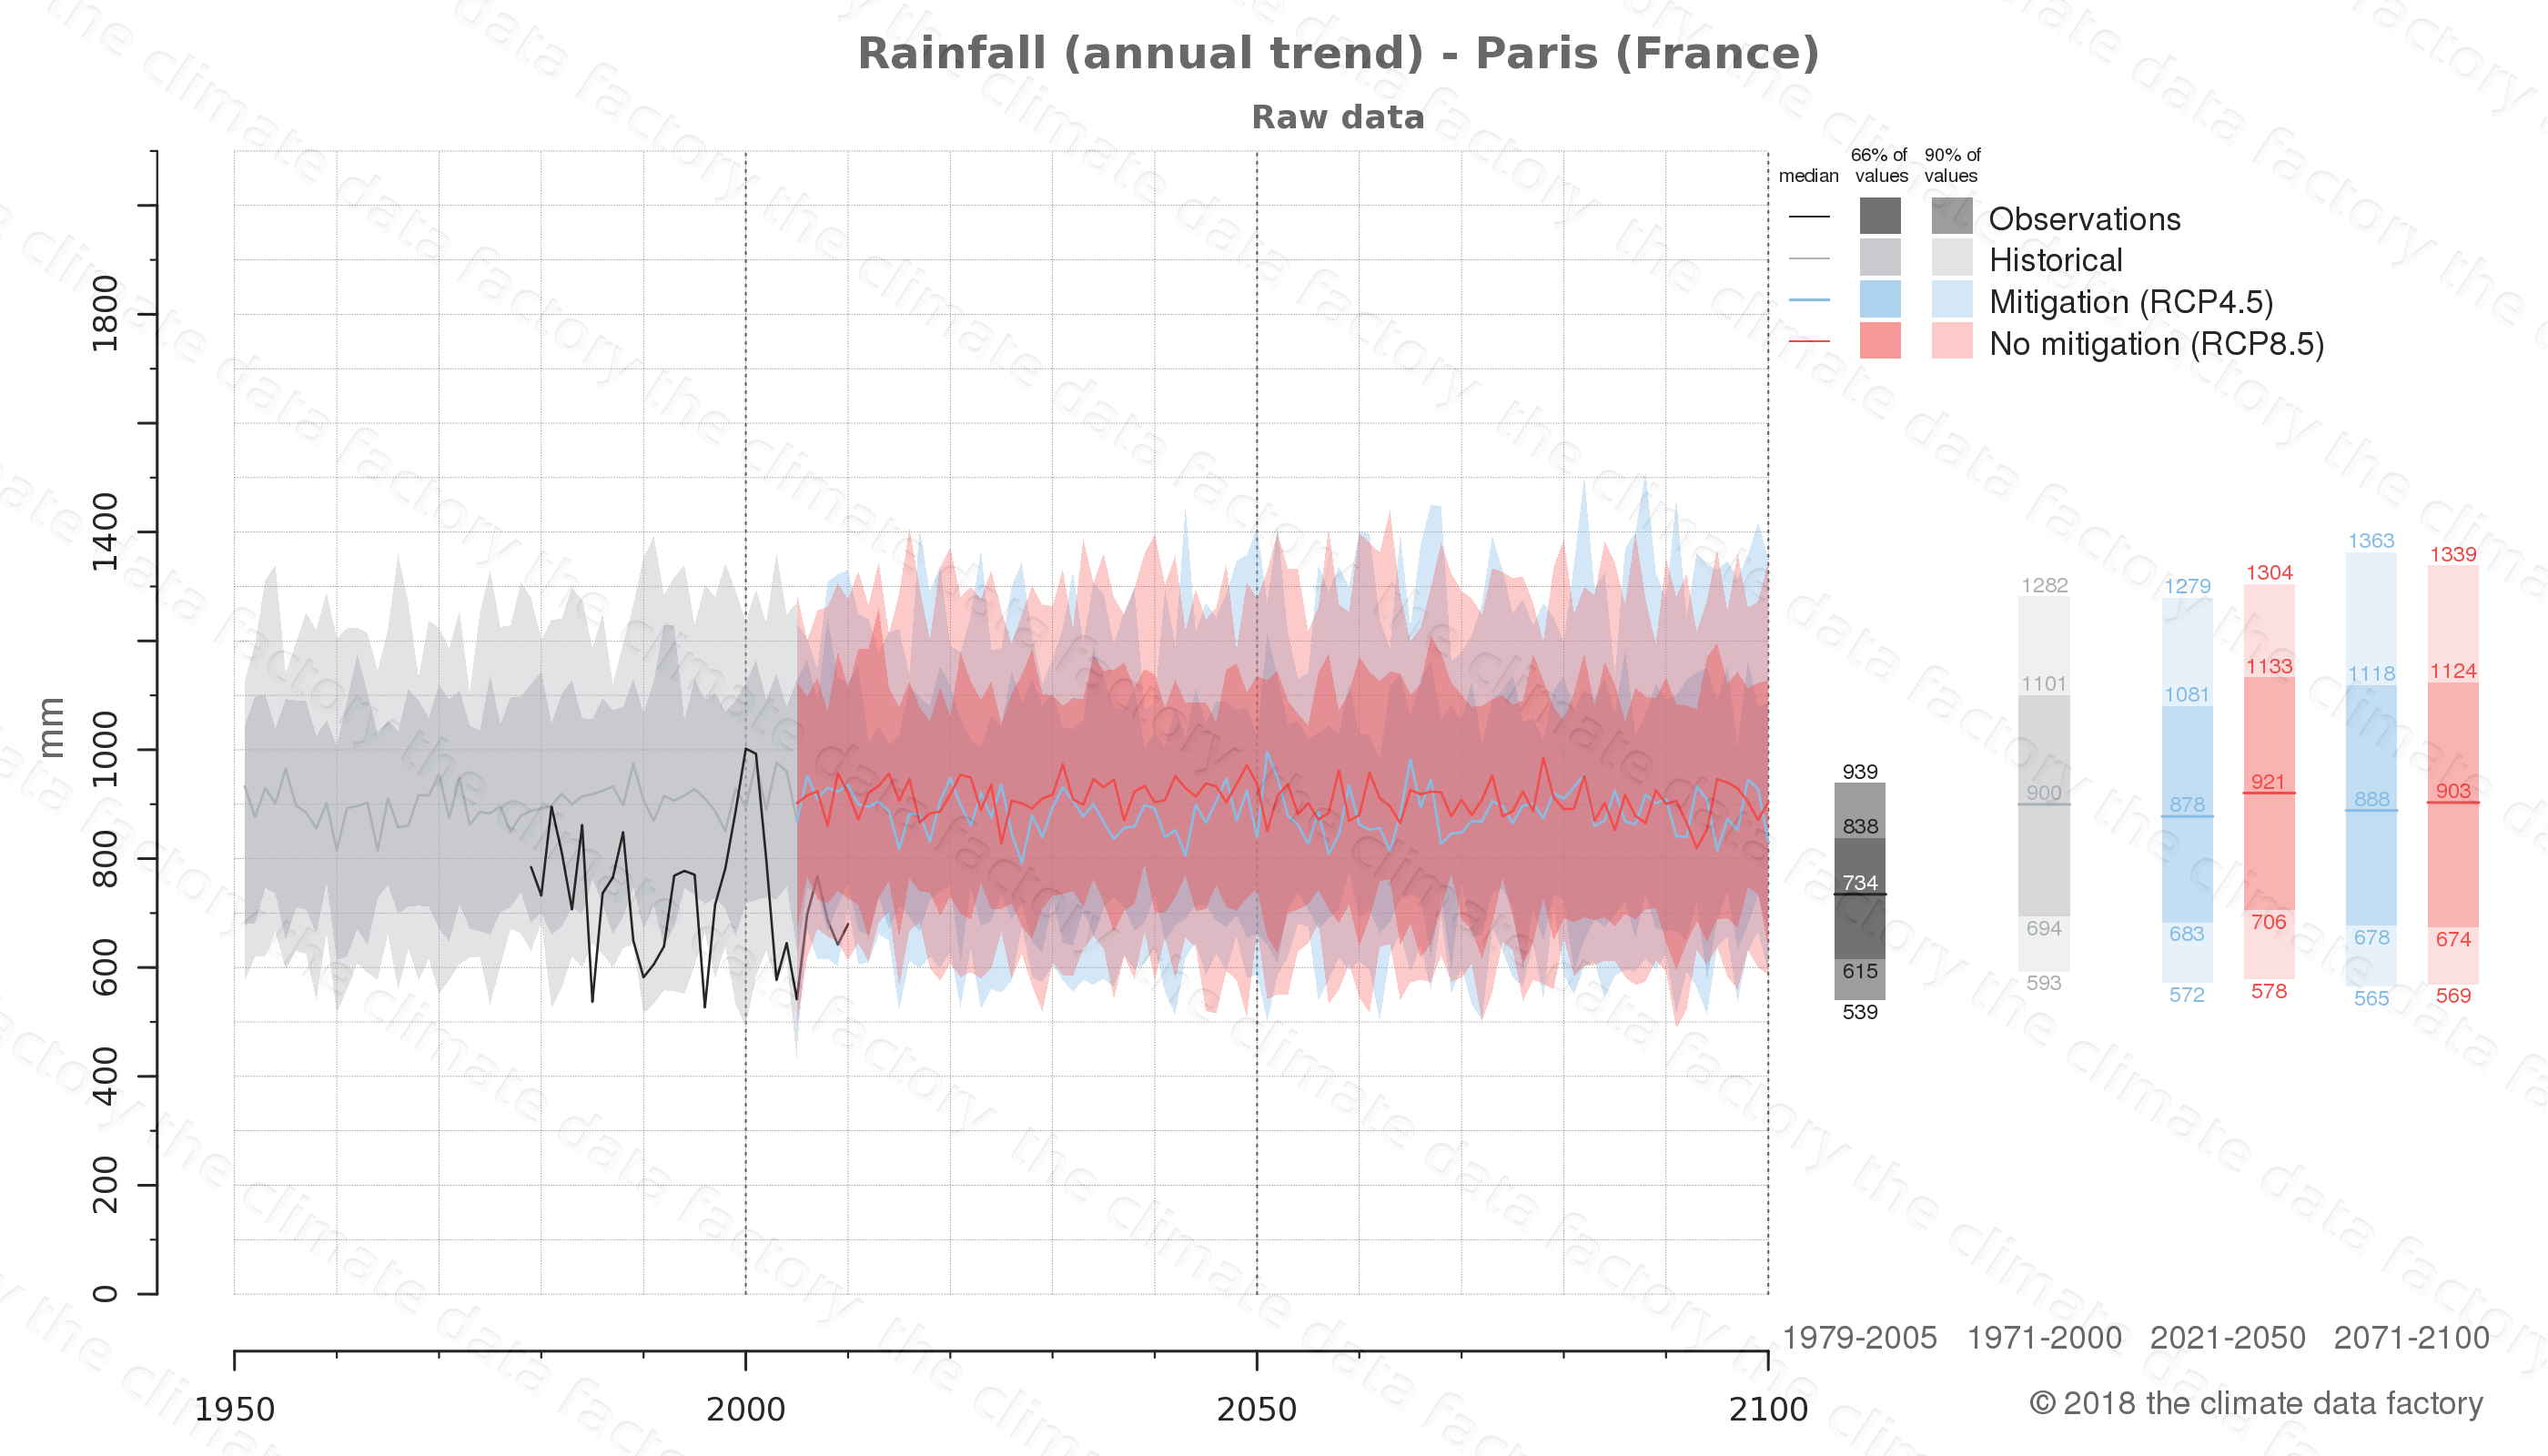 climate change data policy adaptation climate graph city data rainfall paris france